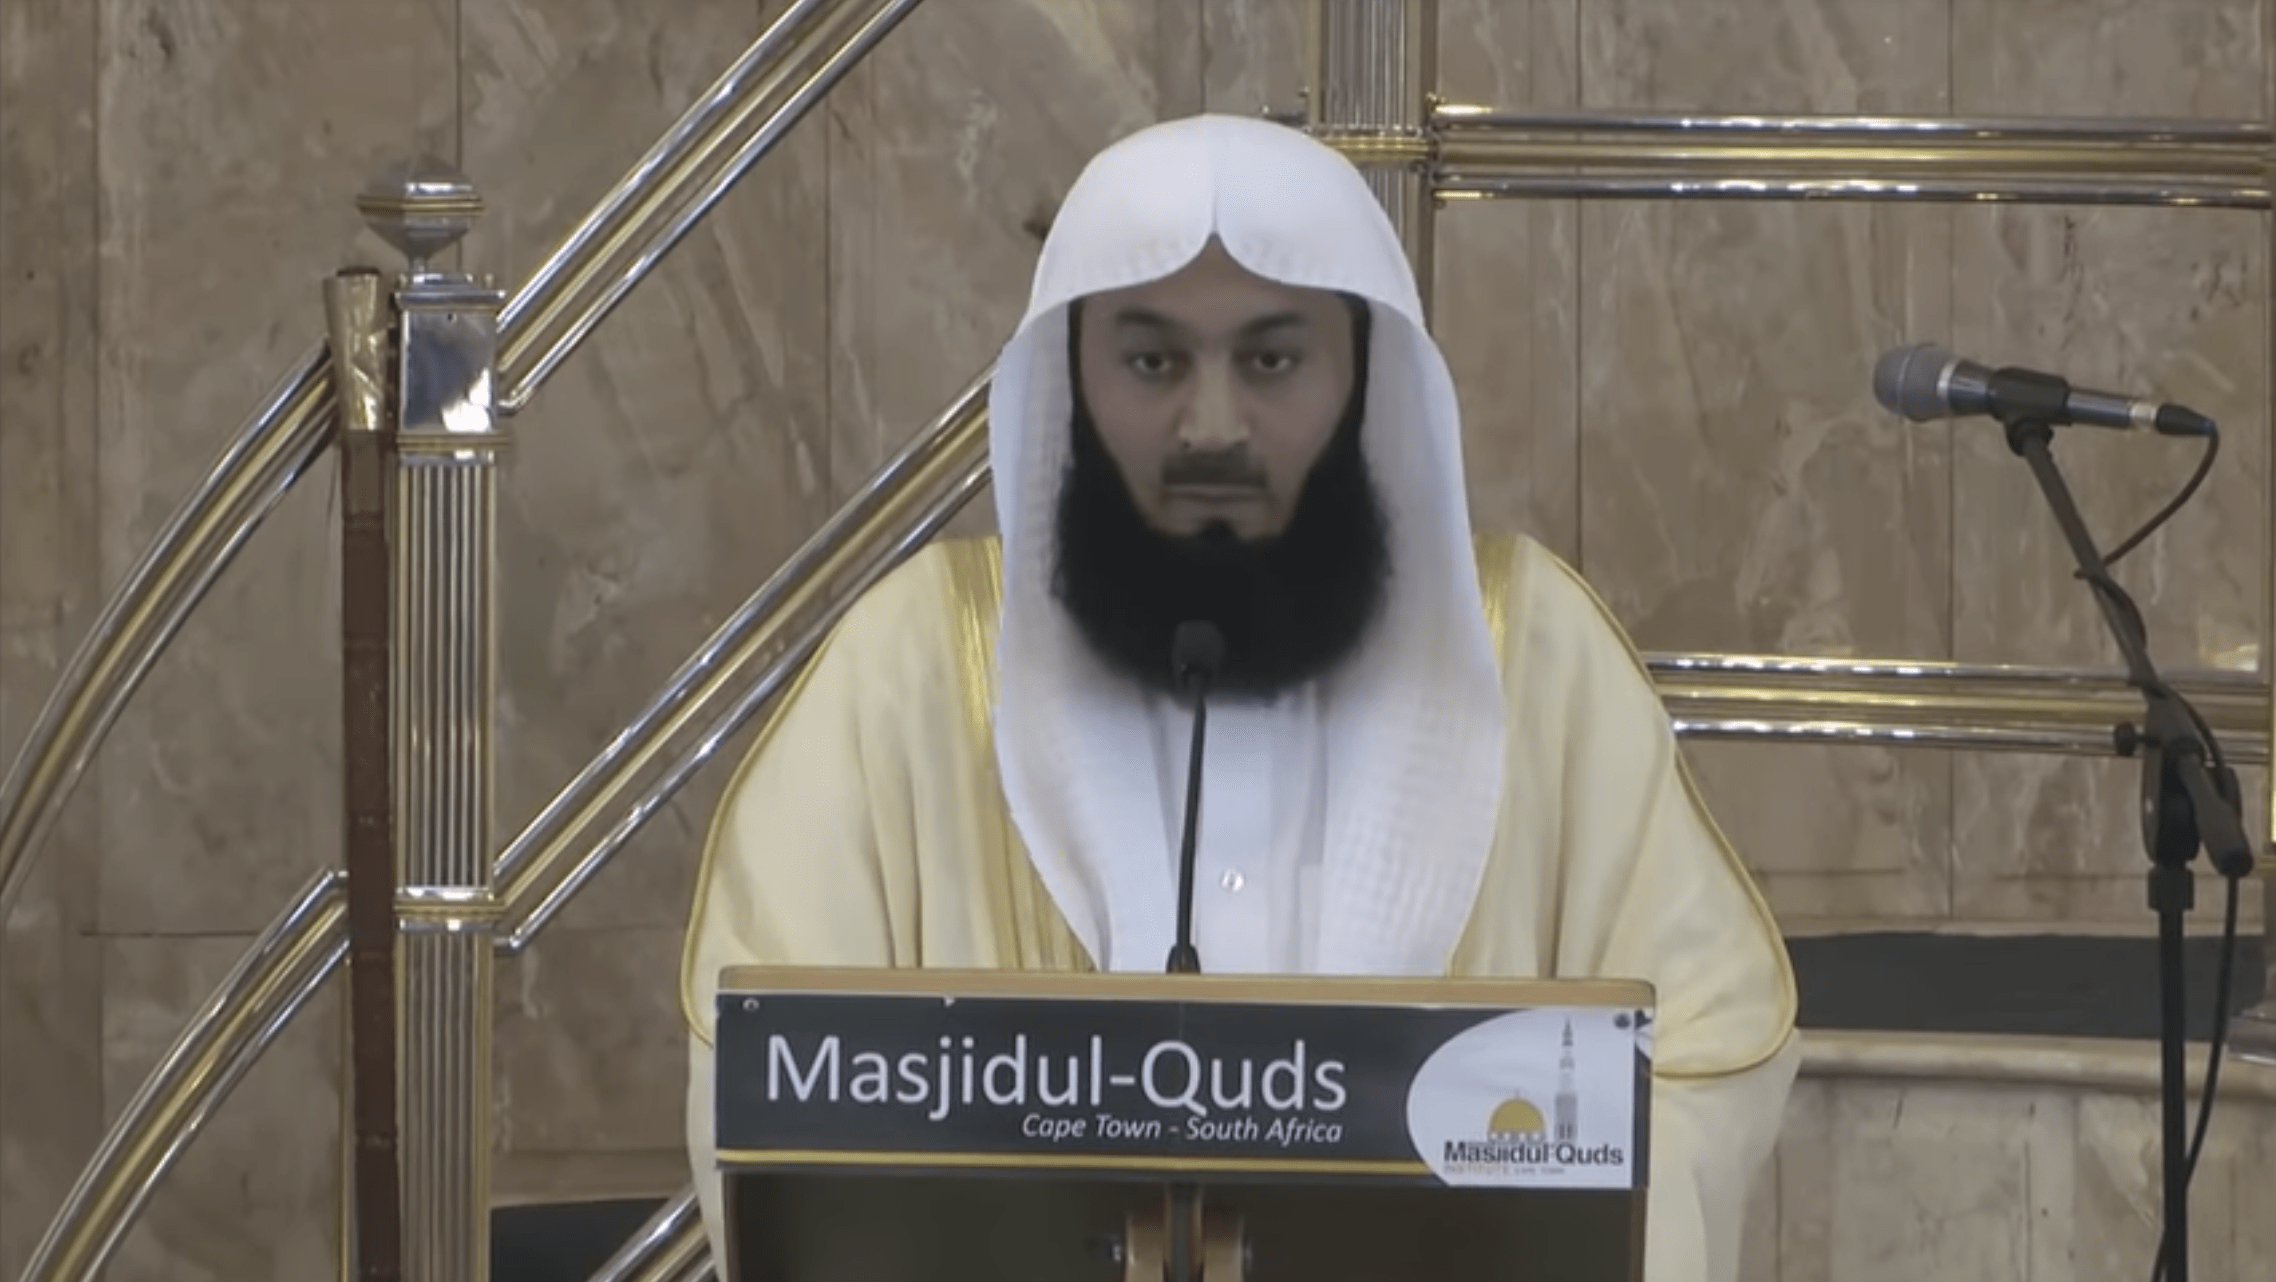 Ismail ibn Musa Menk – Natural Disasters: The Islamic Response